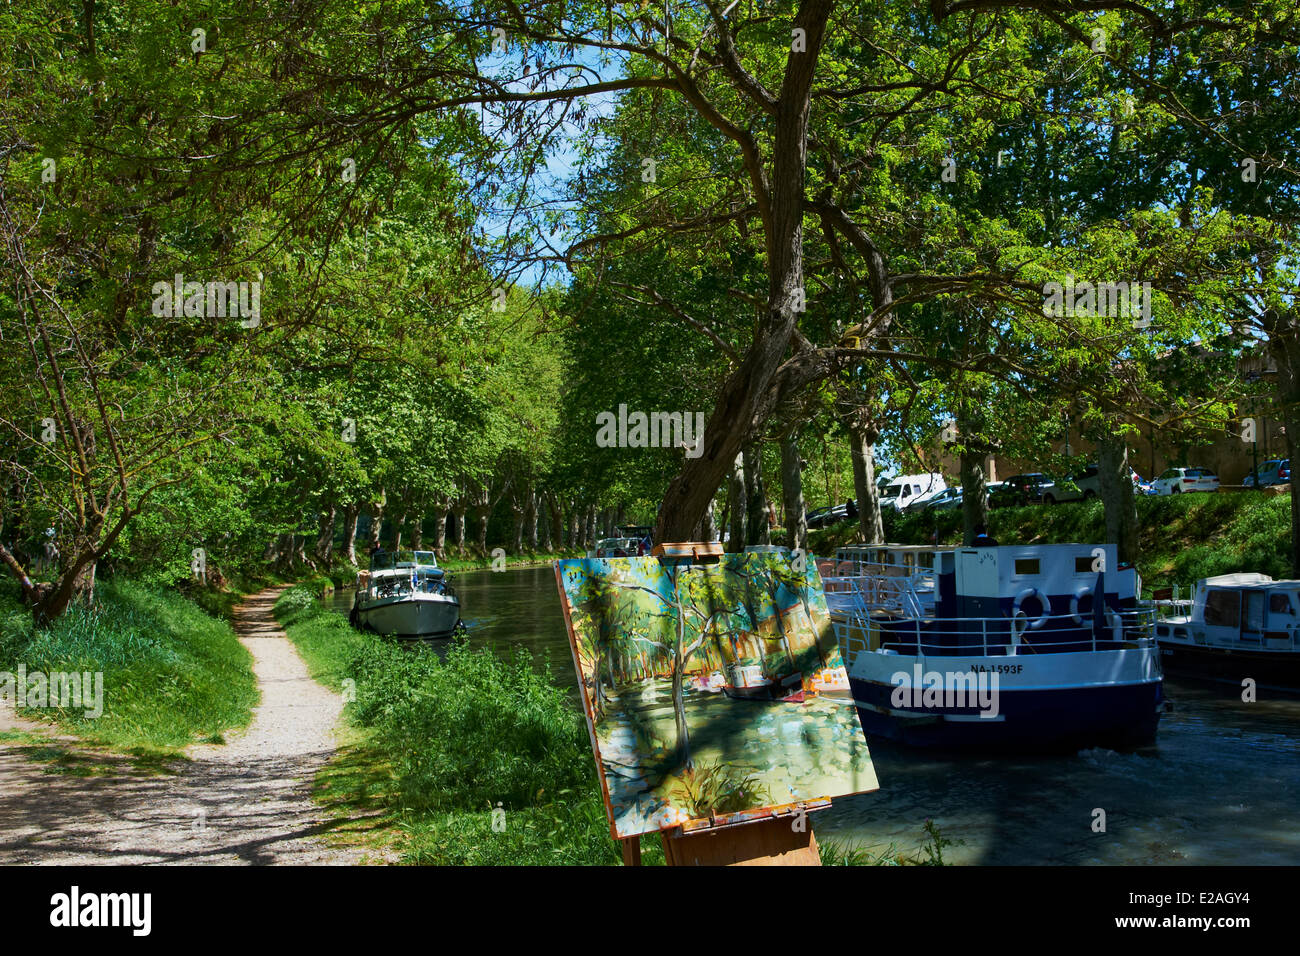 France, Aude, Navigation on the Canal du Midi, listed as World Heritage by UNESCO, painter on the towpath - Stock Image